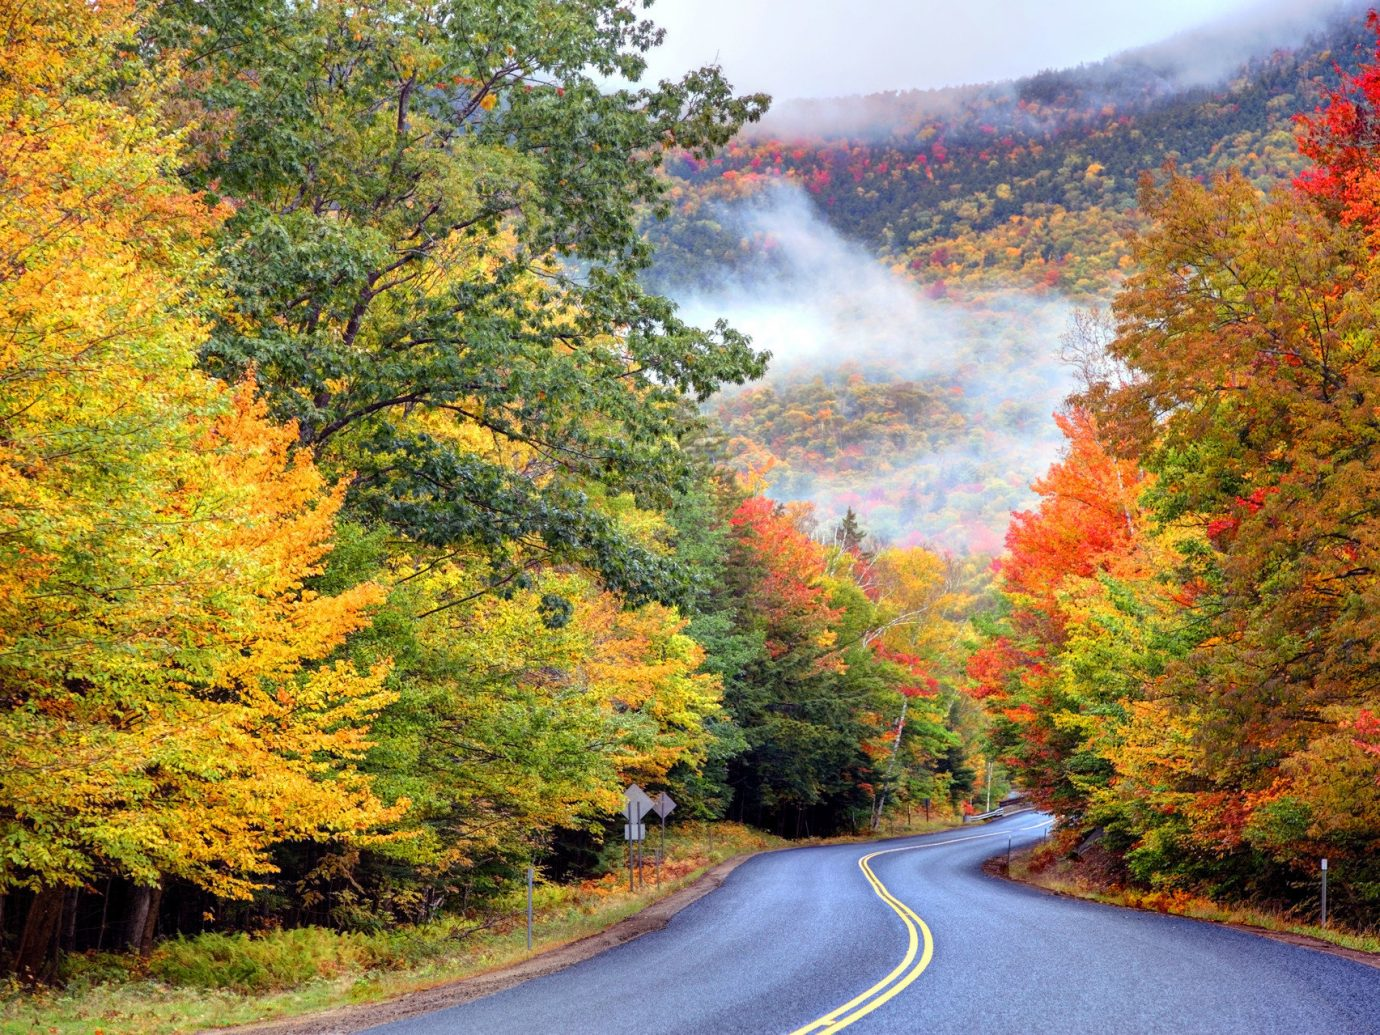 Road Trips Trip Ideas tree outdoor grass autumn season leaf way Forest plant scene woody plant traveling landscape woodland coming flower wooded moving road bushes surrounded